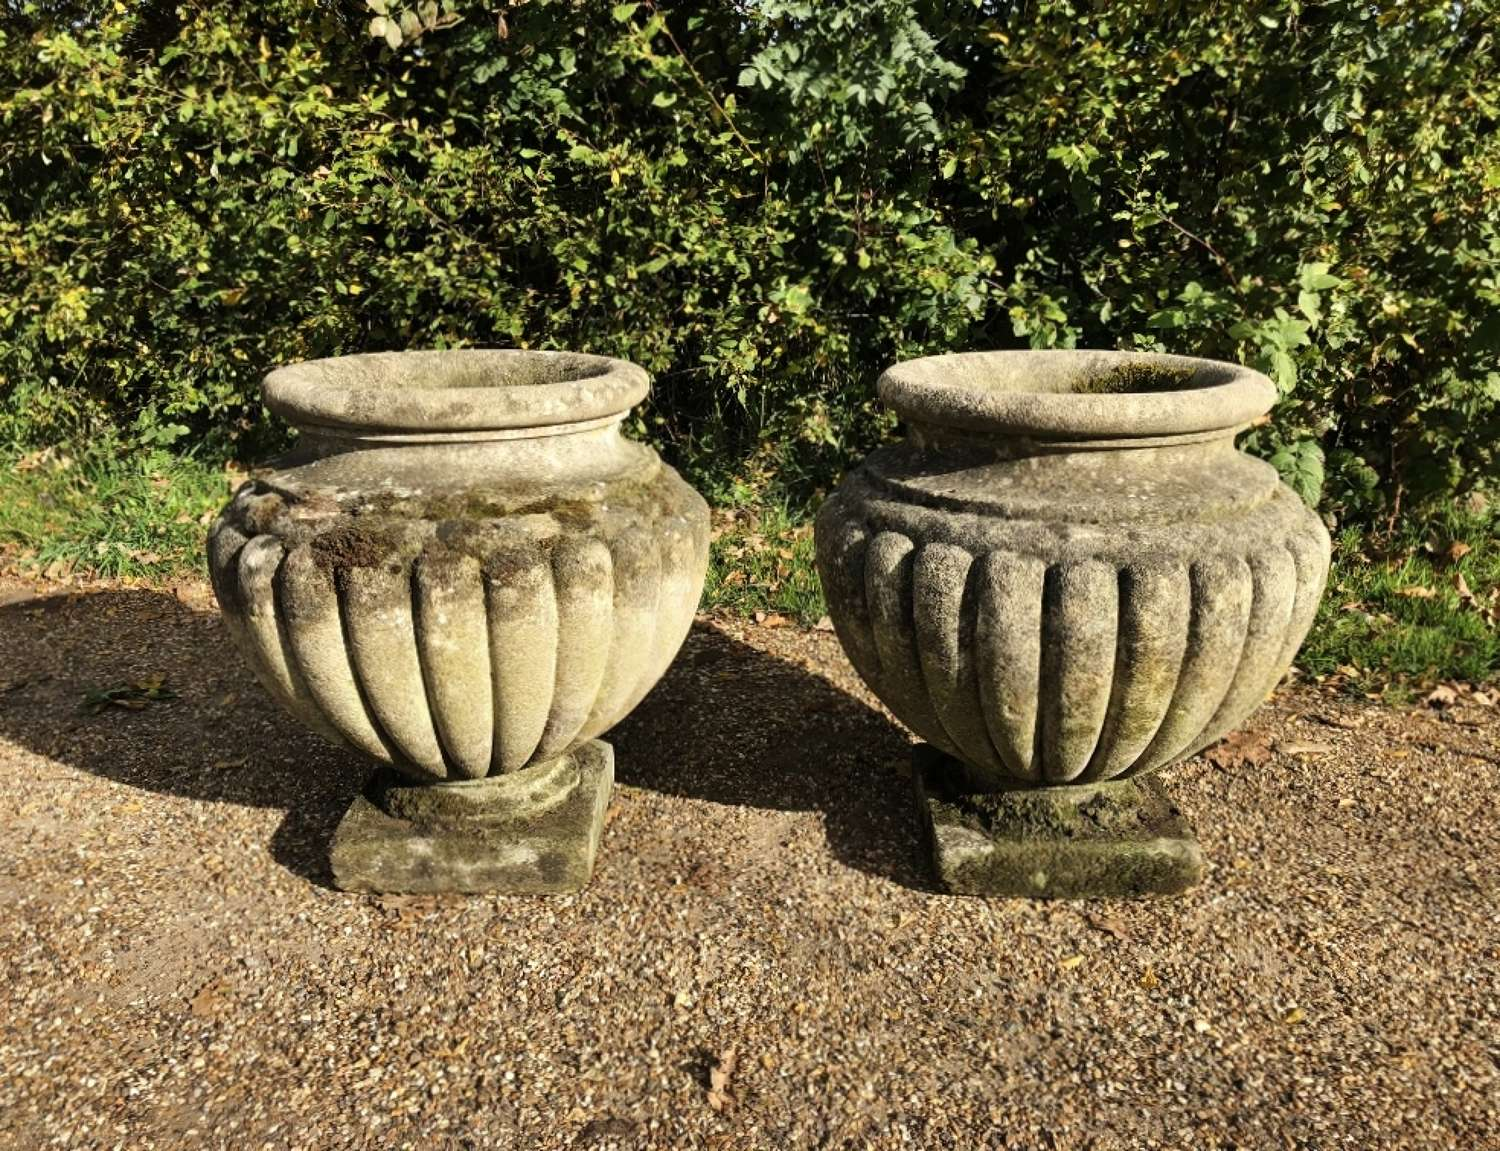 Pair of Large Mossy Vases